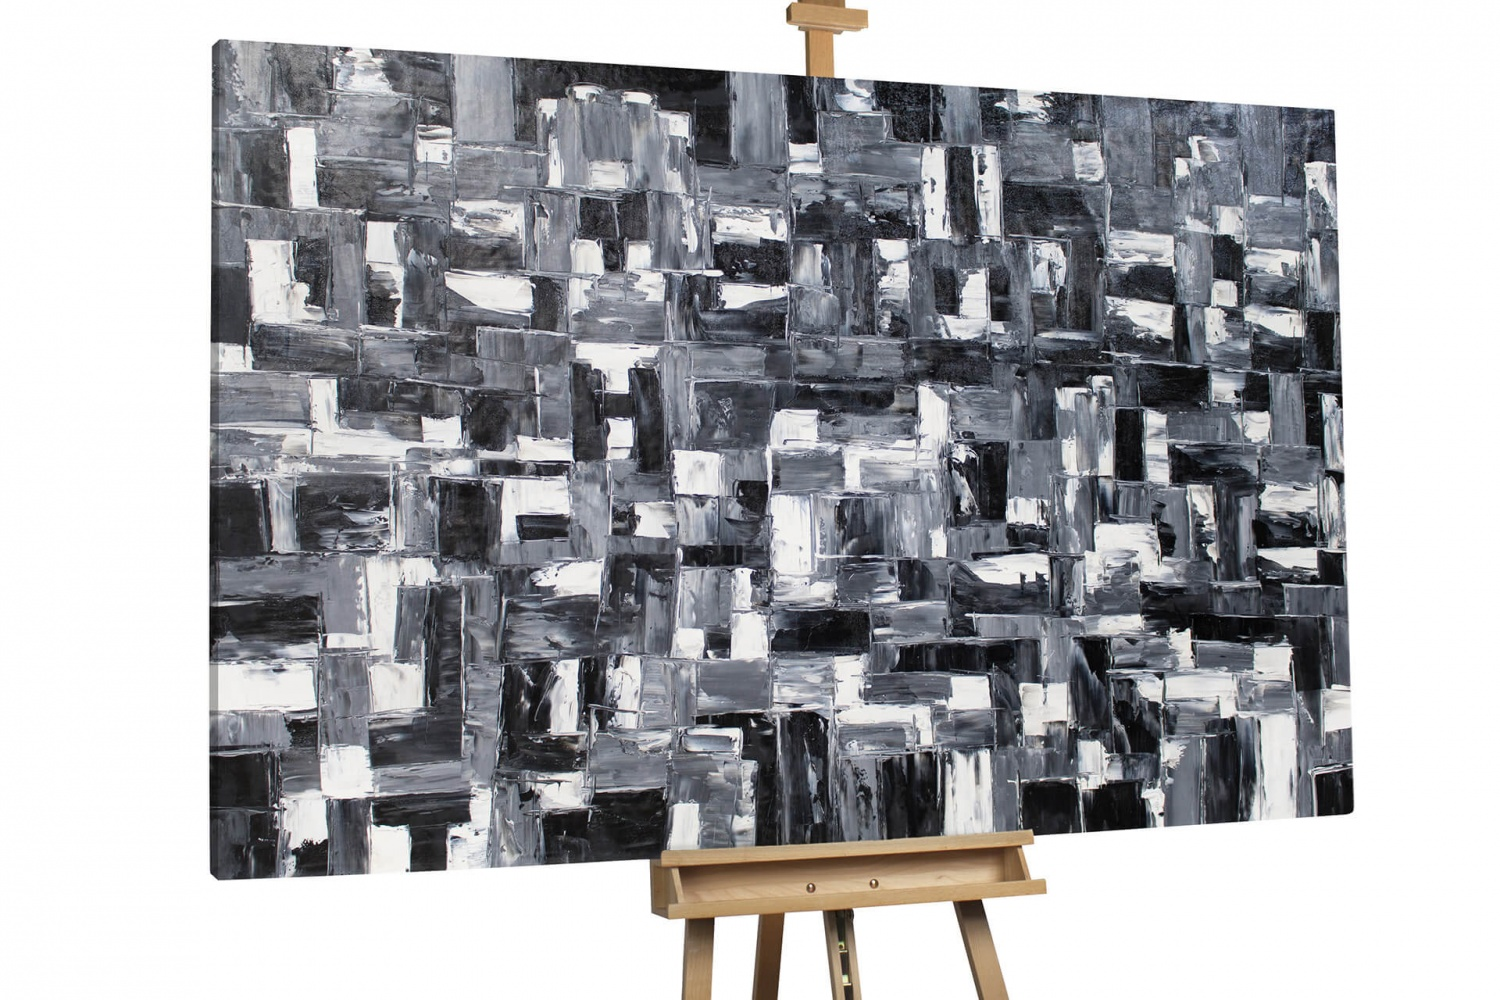 l gem lde 39 abstrakt schwarz weiss xxl 39 handgemalt leinwand bilder 180x120cm ebay. Black Bedroom Furniture Sets. Home Design Ideas